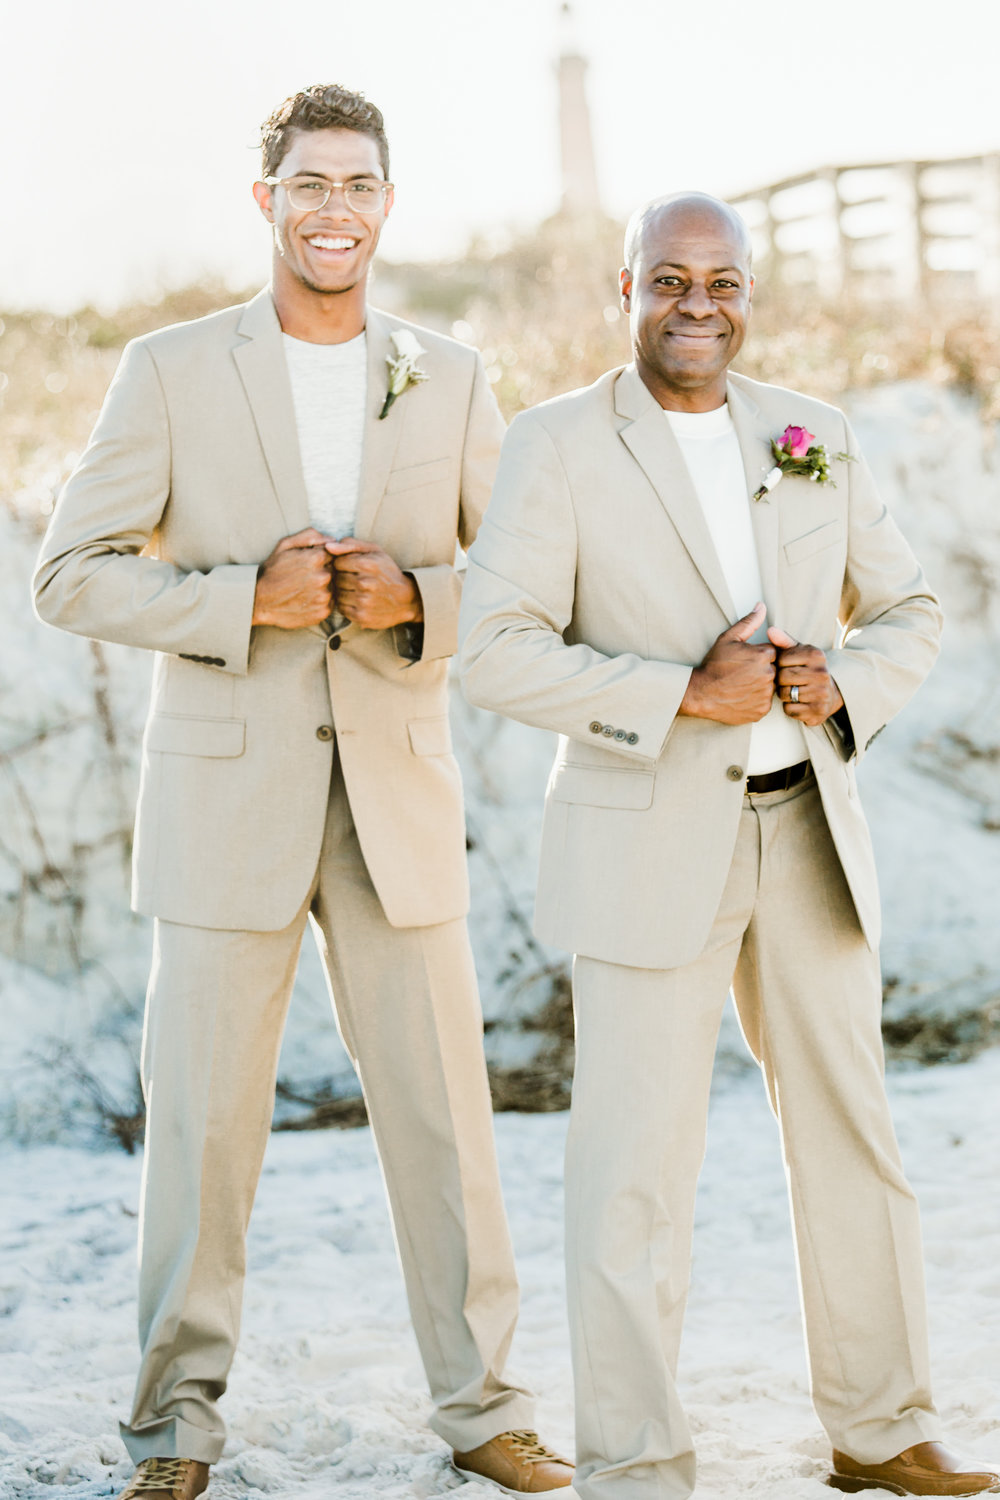 Violets & Seastars- November Ponce Inlet Wedding - Suzette & Dwight 106.jpg